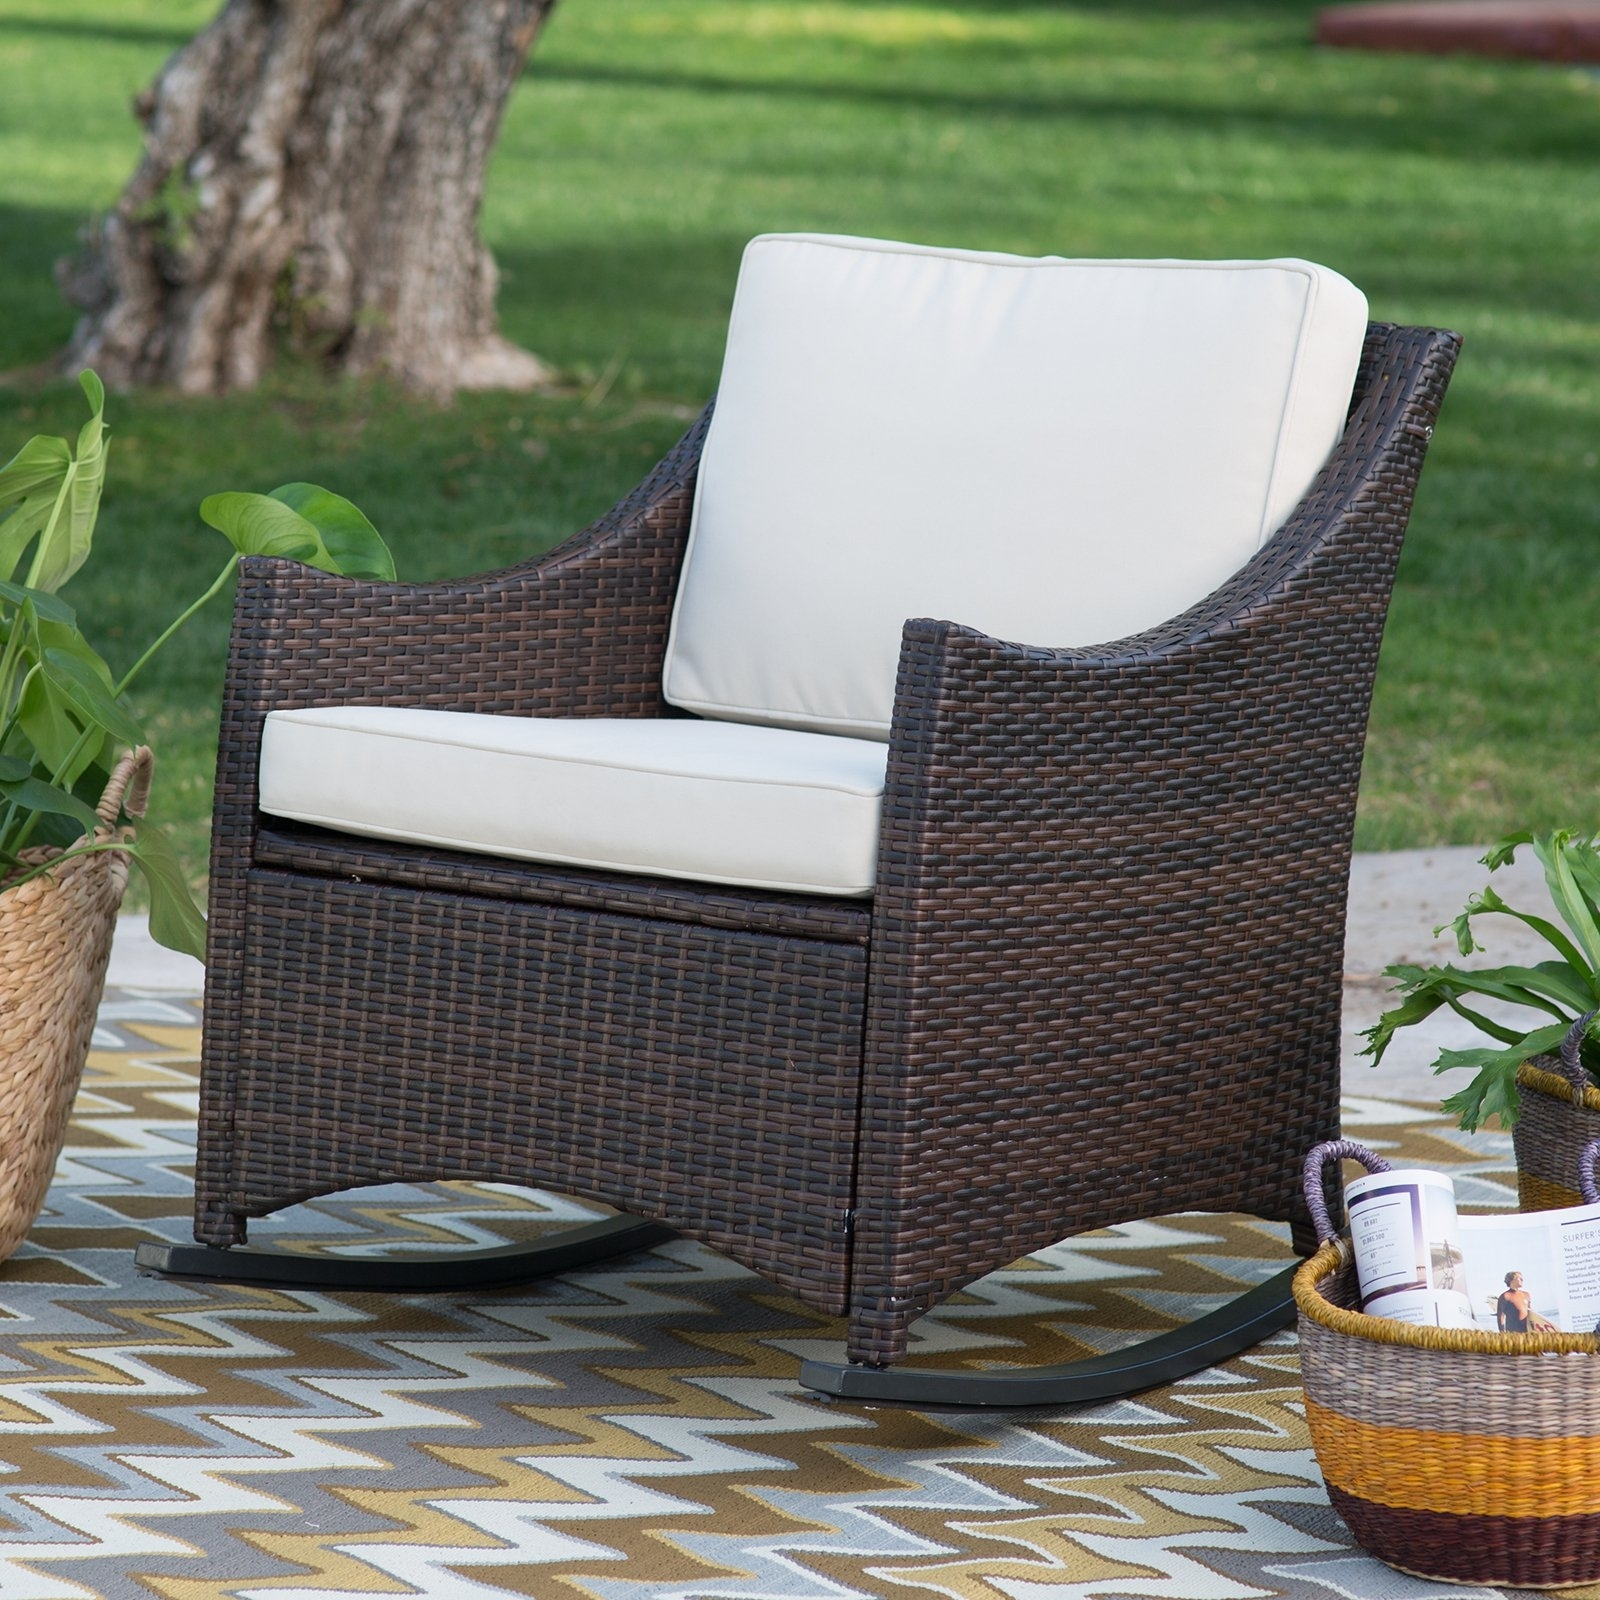 Chair | Outdoor Rocking Chairs For Sale Traditional Rocking Chair With Regard To Rattan Outdoor Rocking Chairs (View 2 of 15)